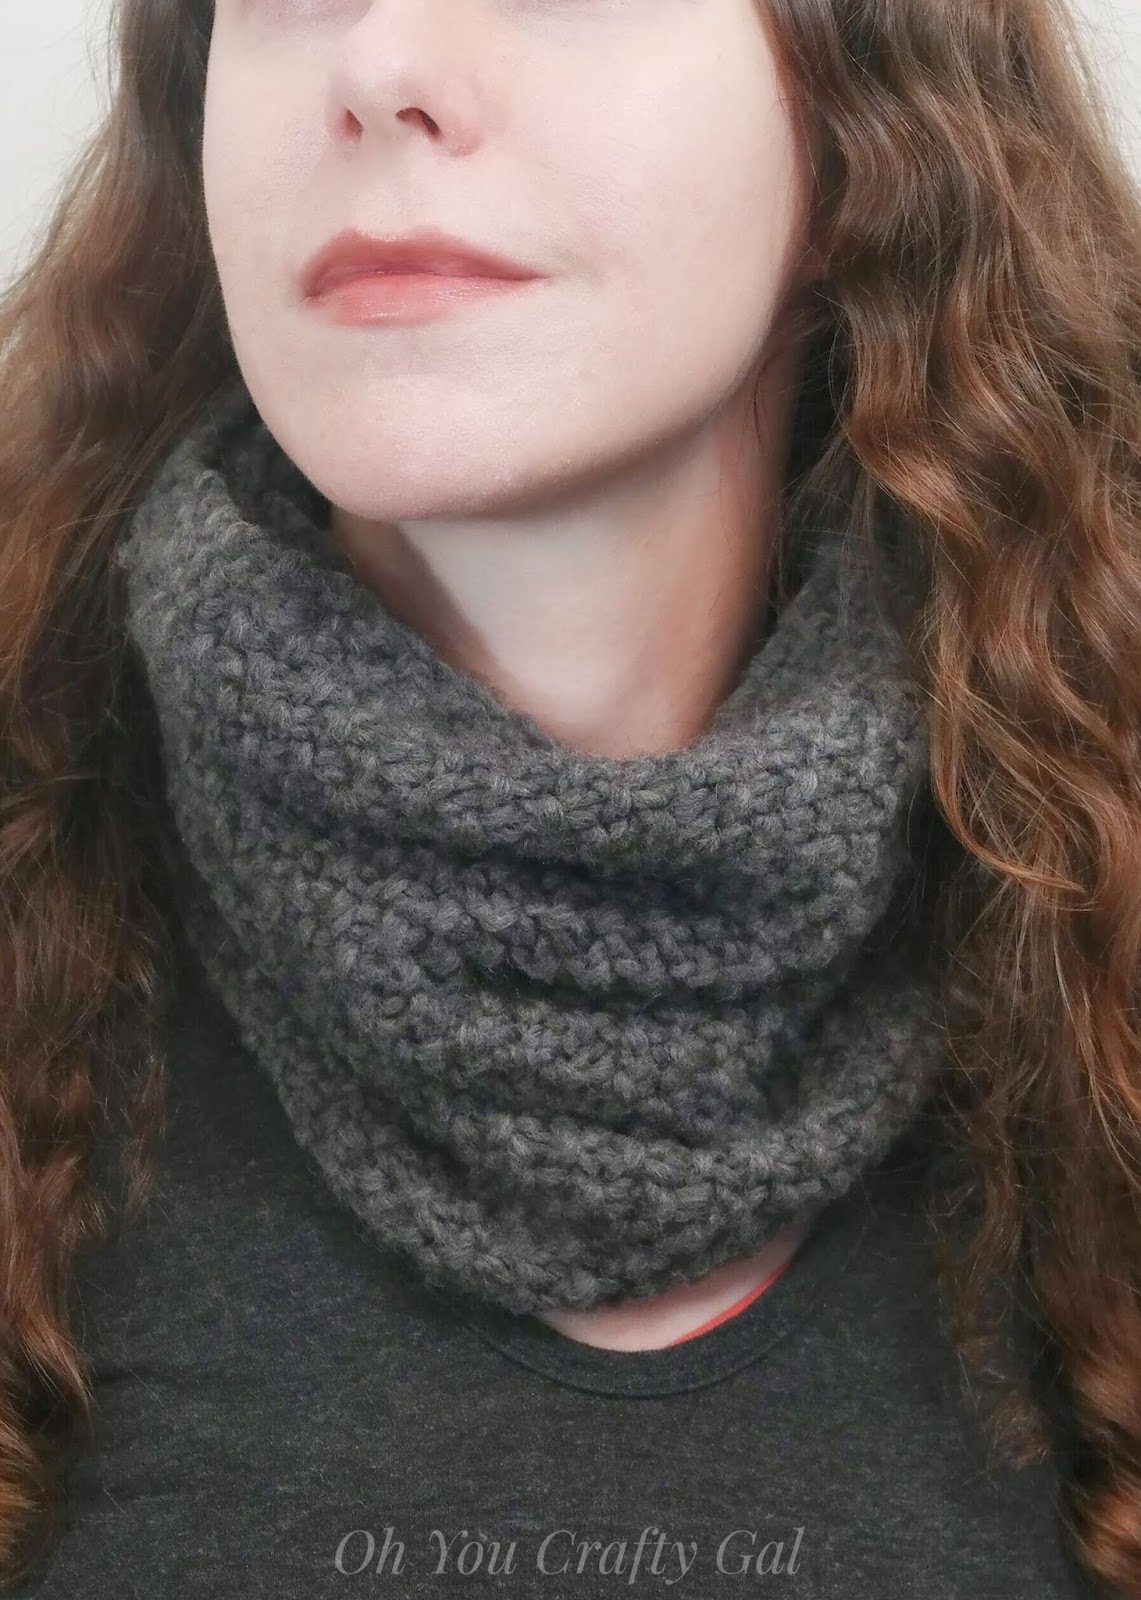 Chelsea Chunky Cowl Free Knitting Pattern - Oh You Crafty Gal